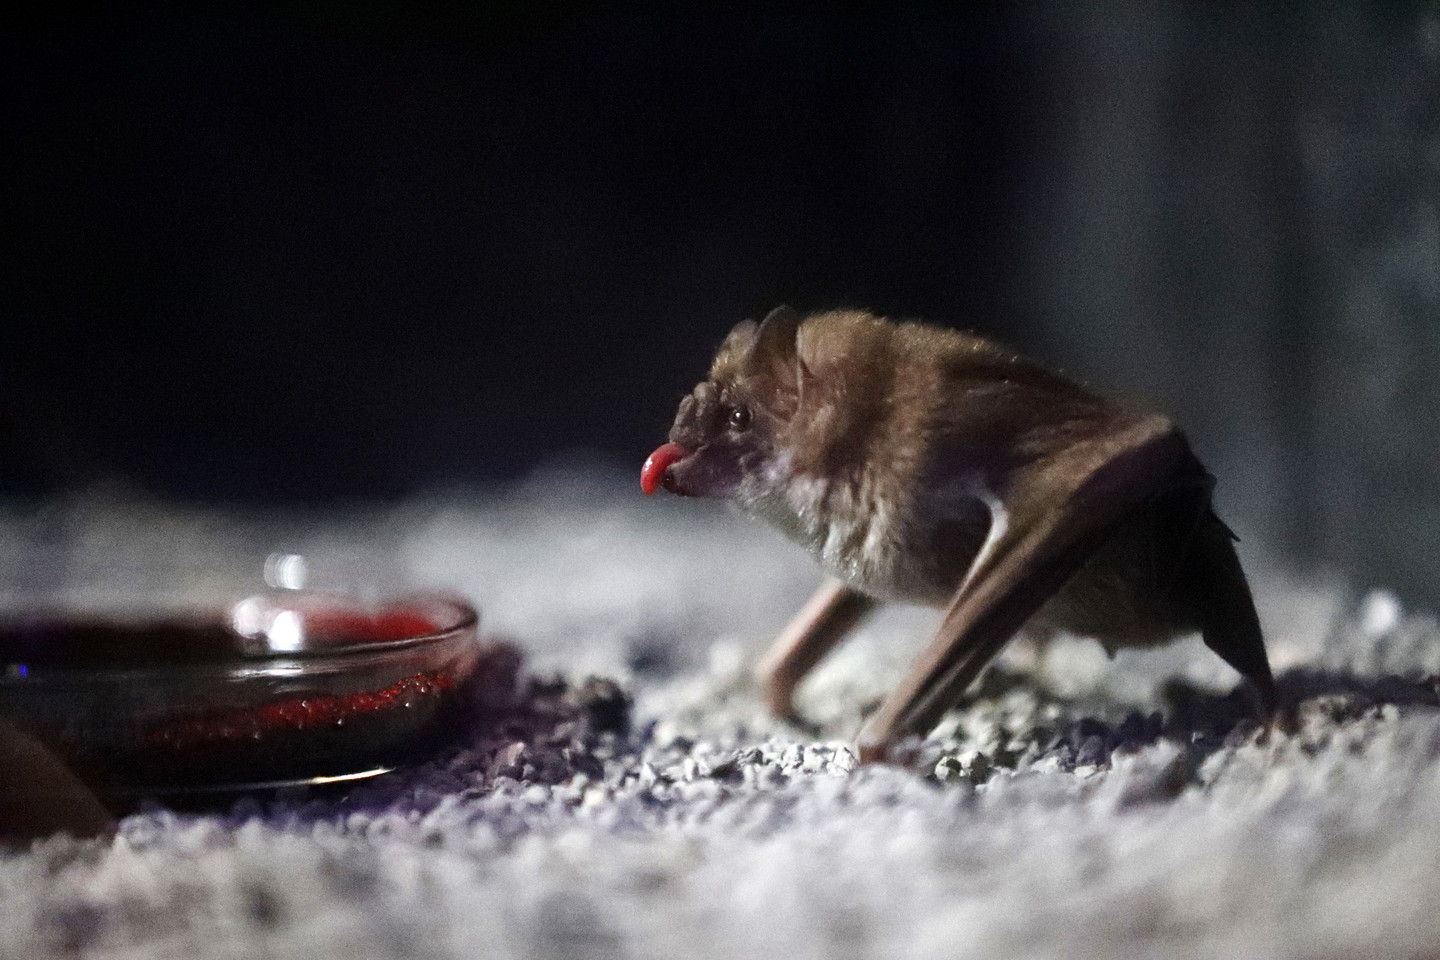 COVID-19 Reignites Contentious Debate Over Bats and Disease